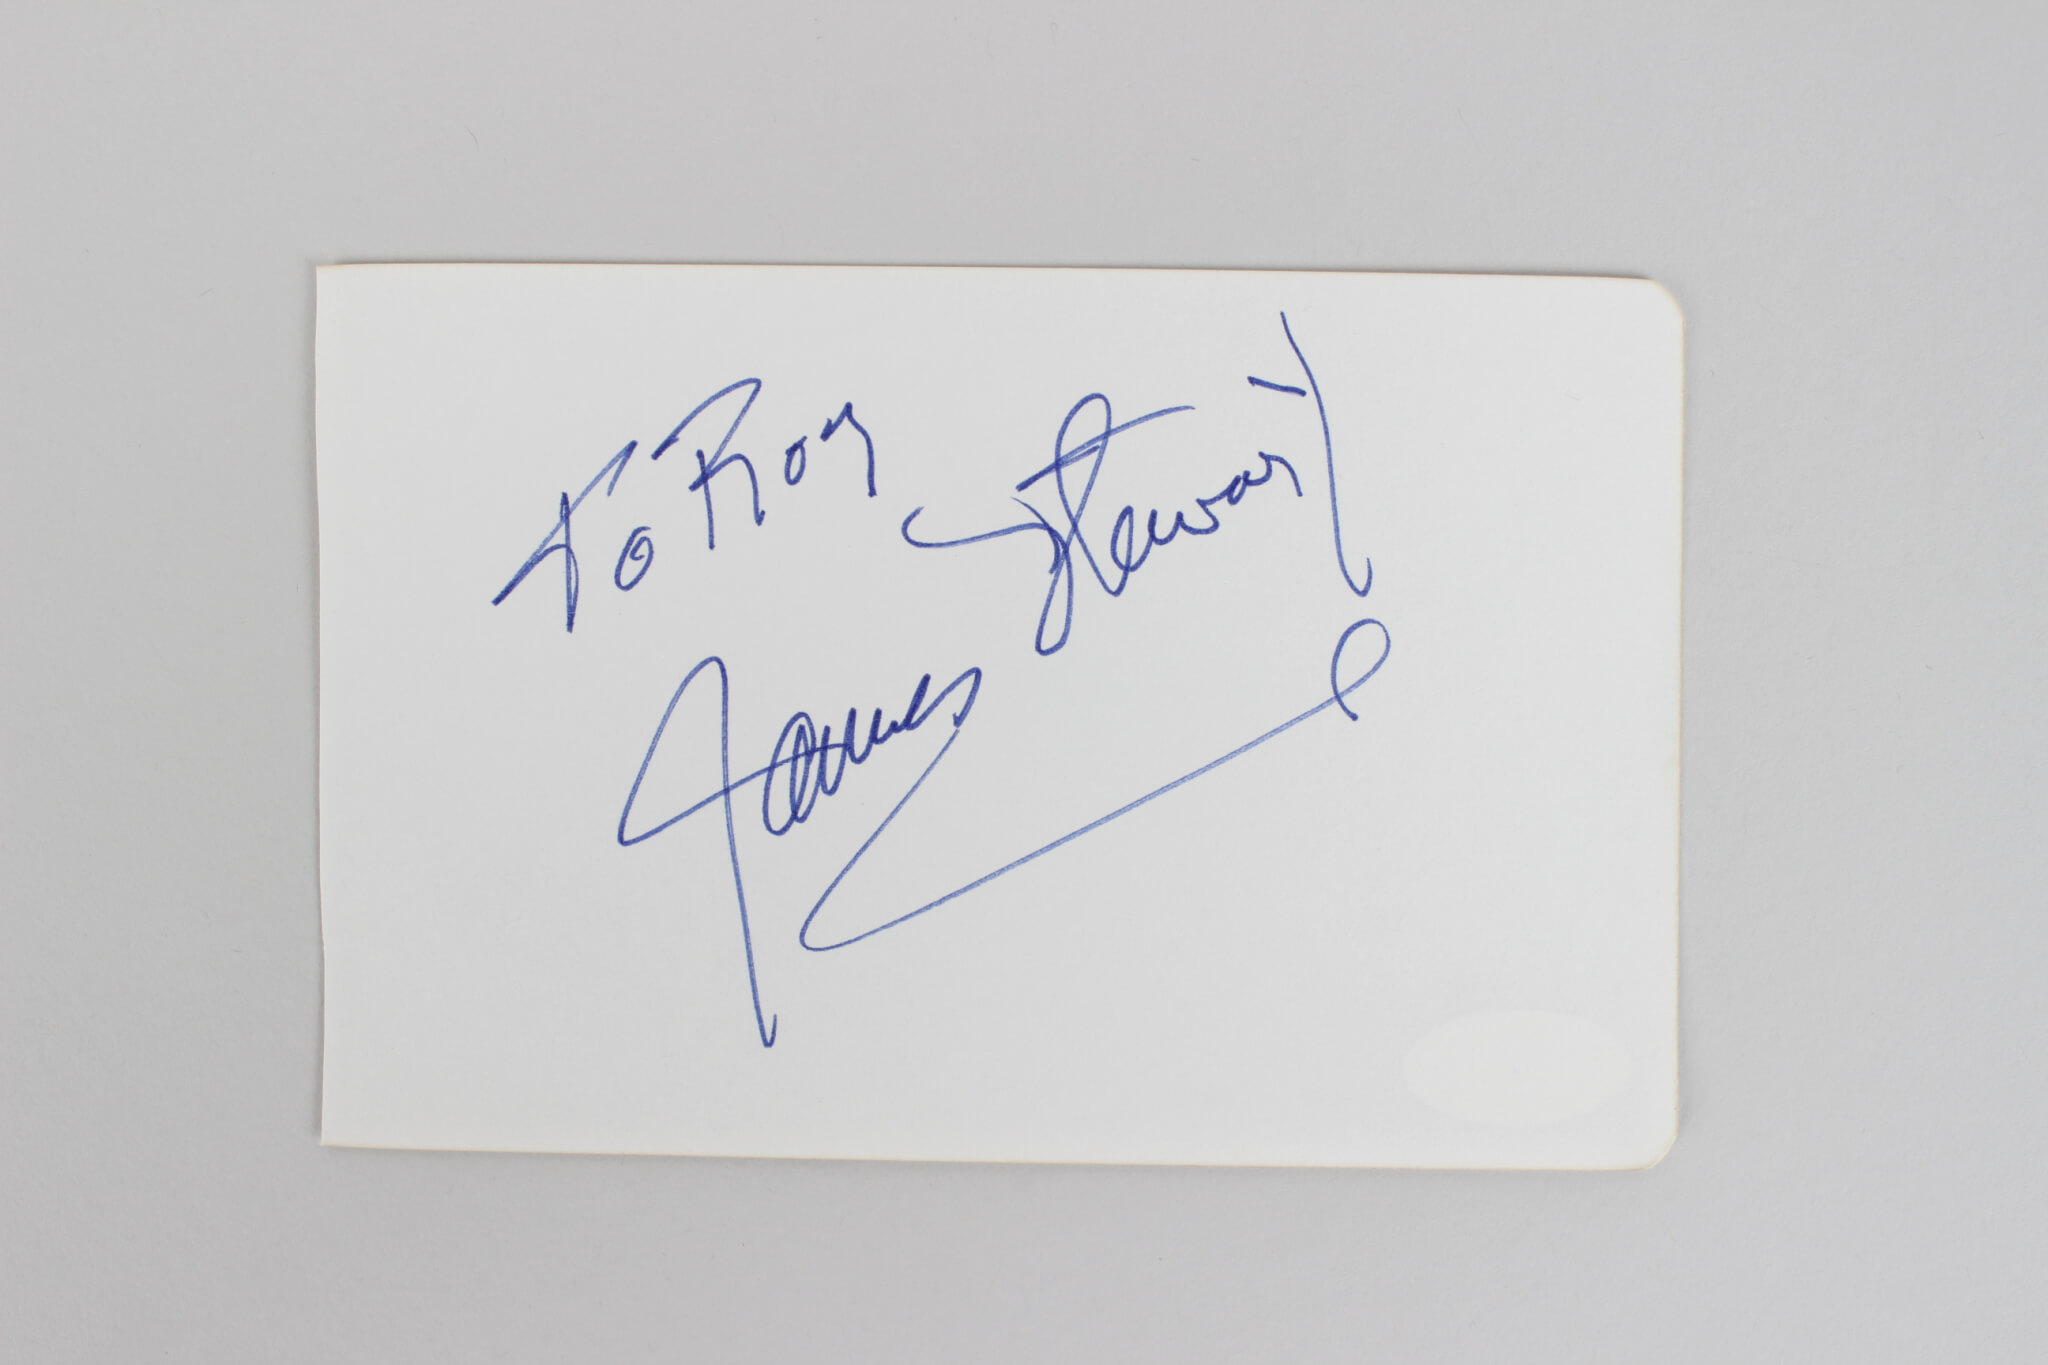 James Stewart Signed 4×6 Cut (JSA)49284_01